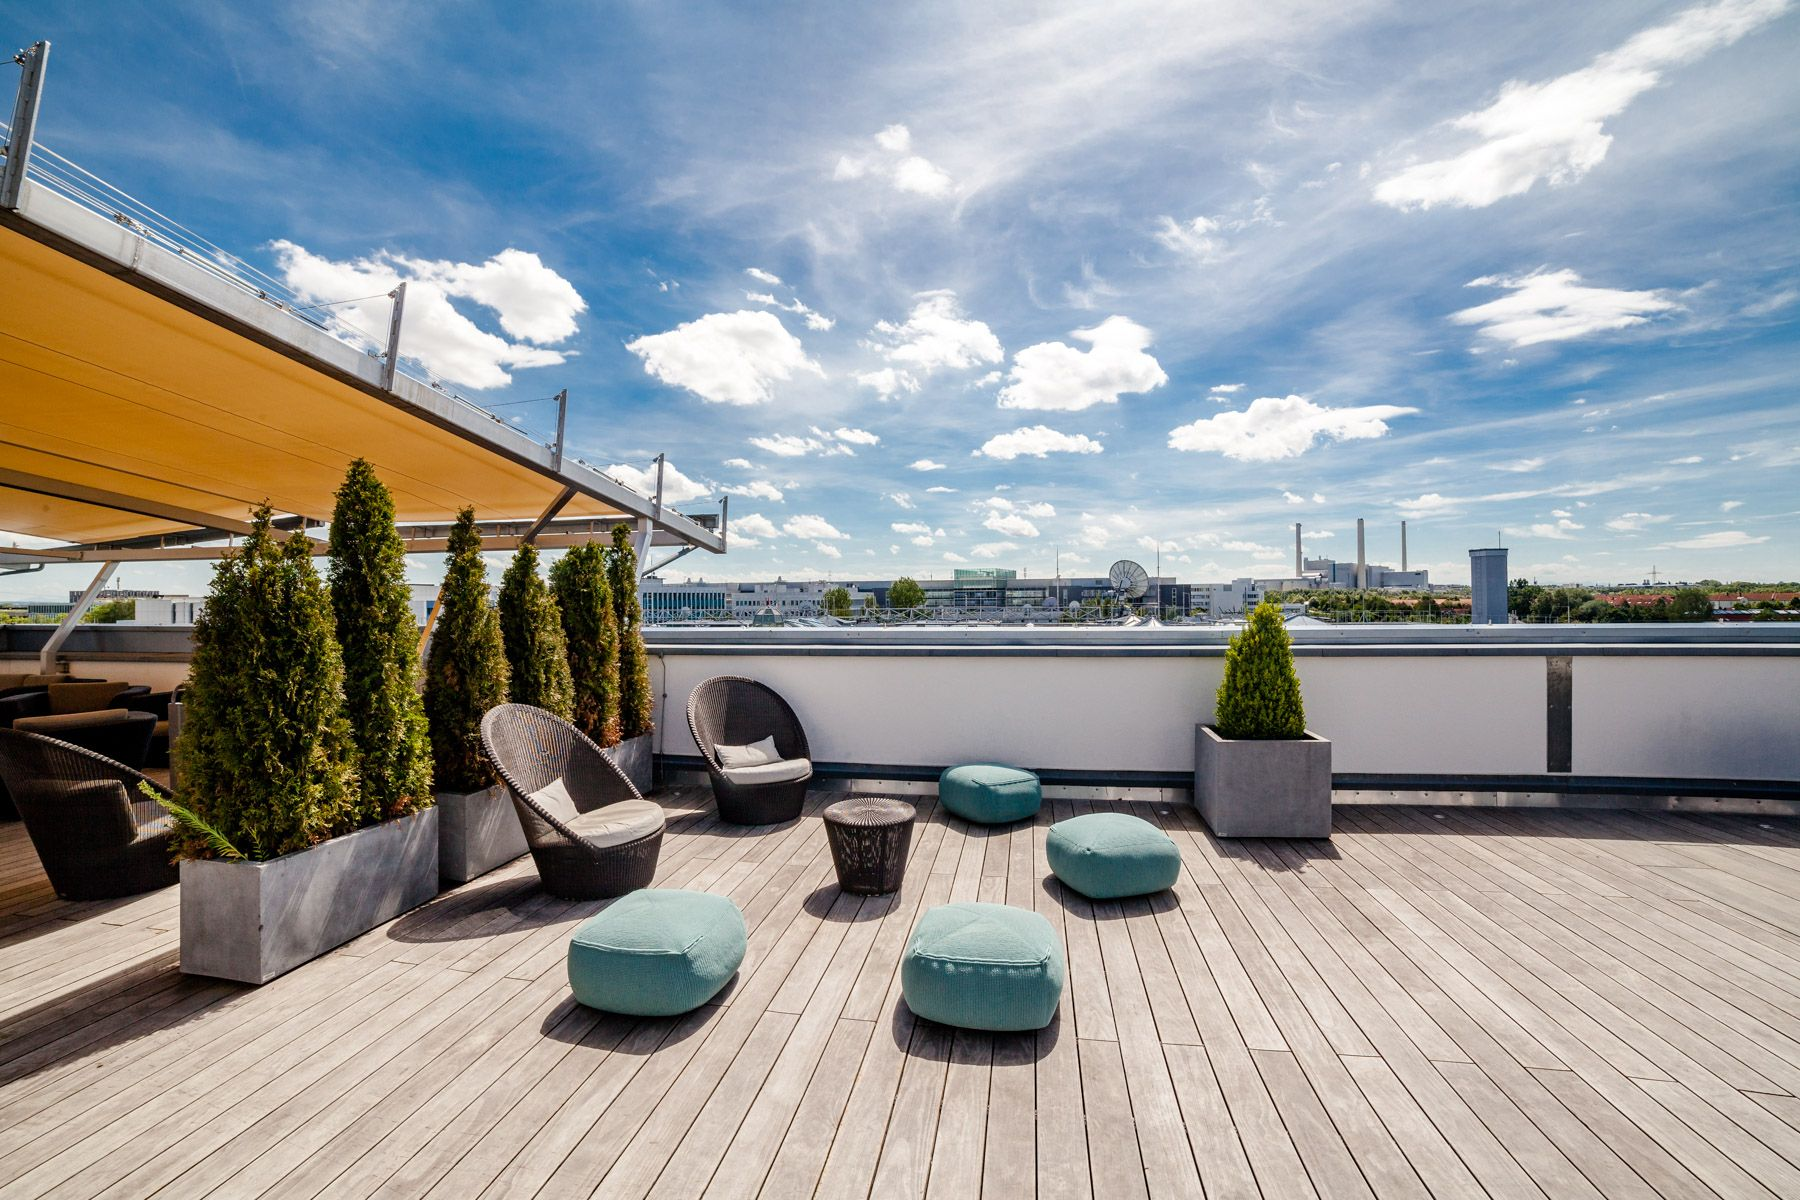 Rooftop Design Captivating 7 Rooftop Deck And Terrace Designs For Your Next Commercial . Design Inspiration